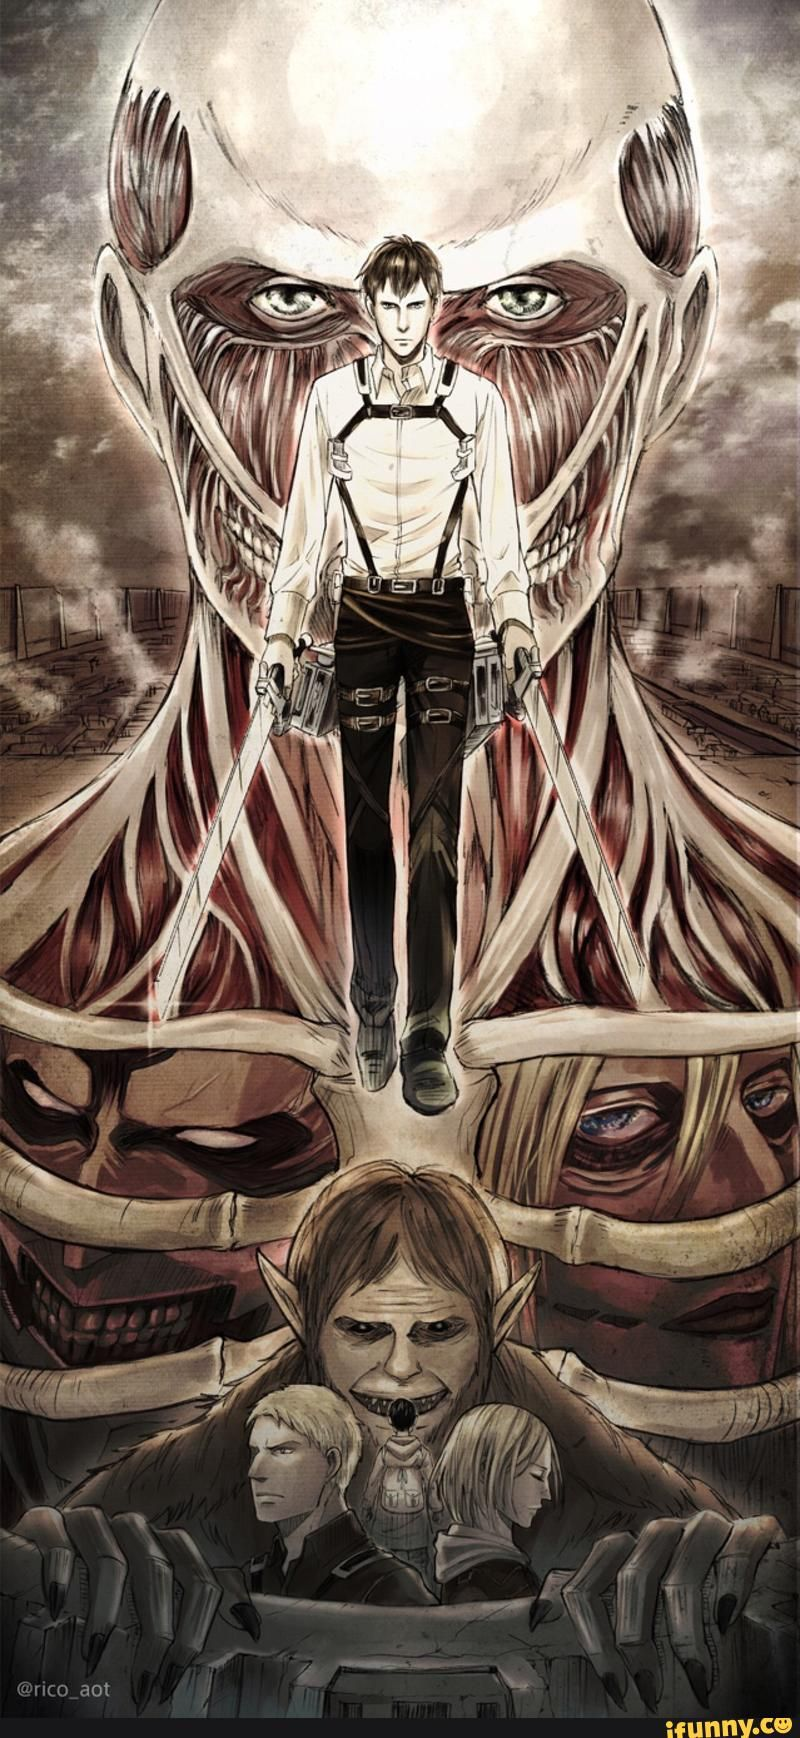 Reiner attack on titan